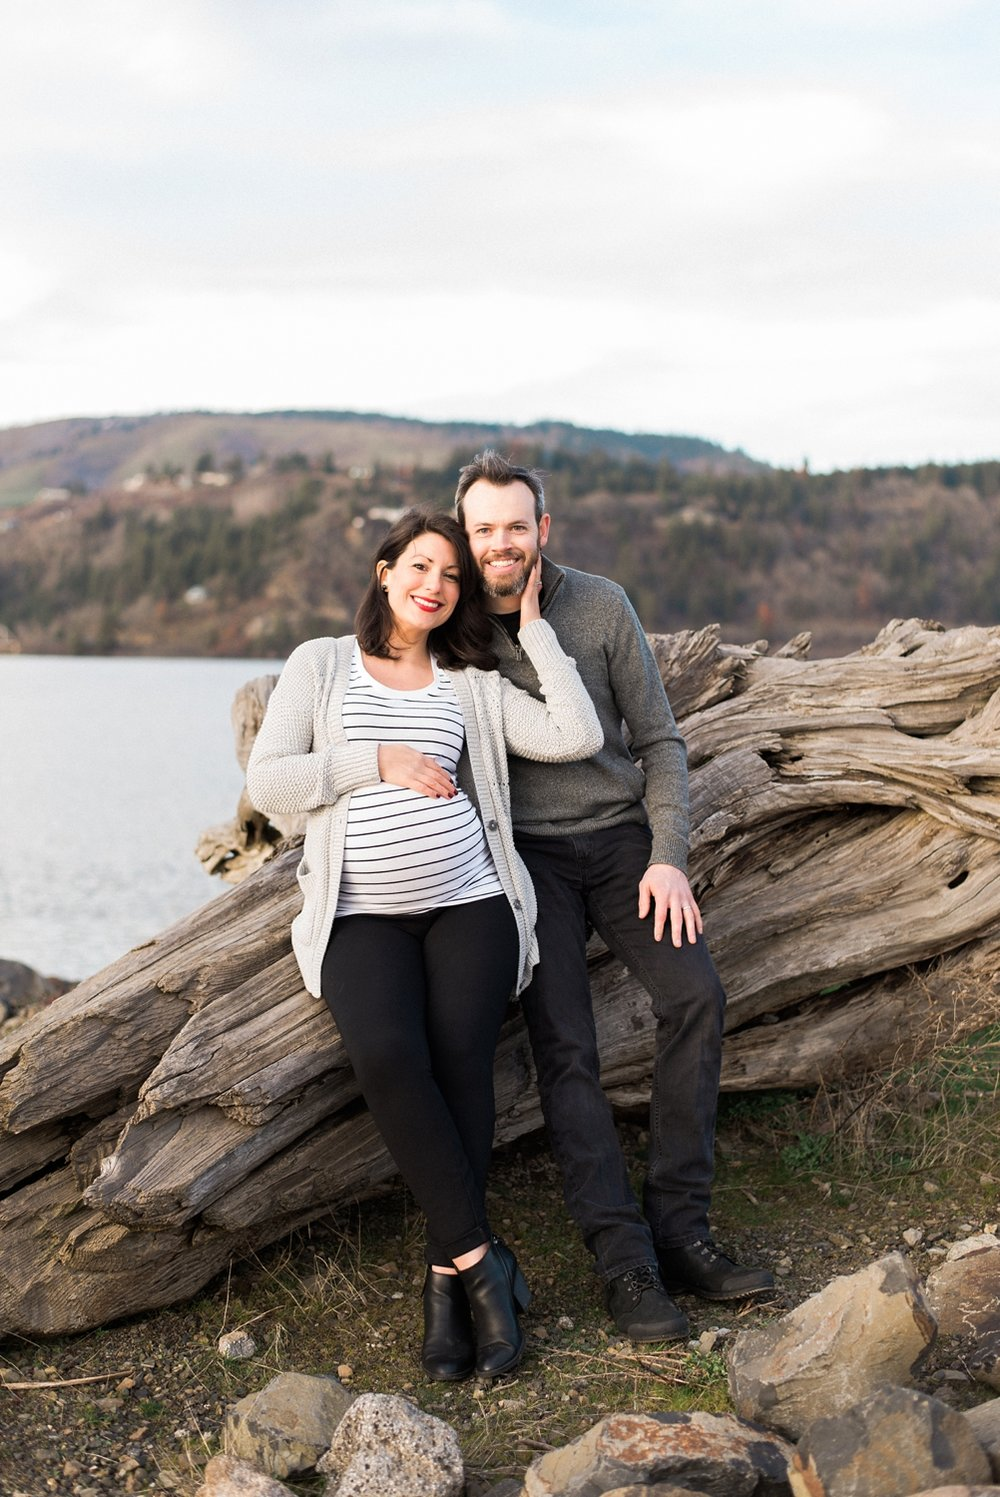 hood-river-maternity-photos-columbia-river-gorge-shelley-marie-photo-099_cr.jpg